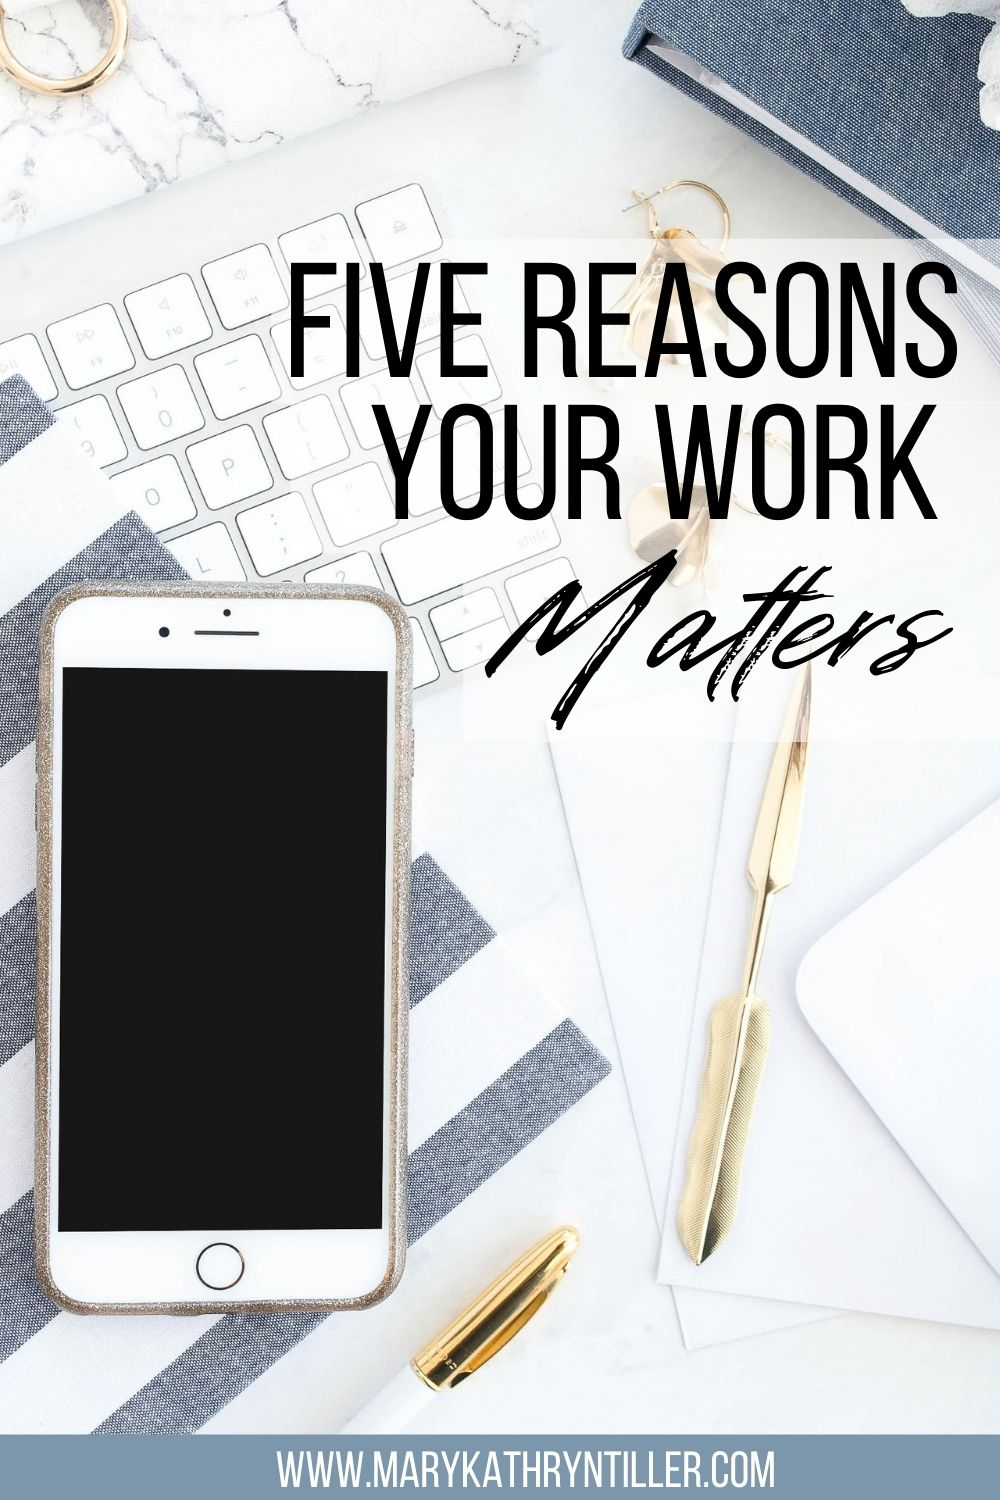 Five Reasons Your Work Matters